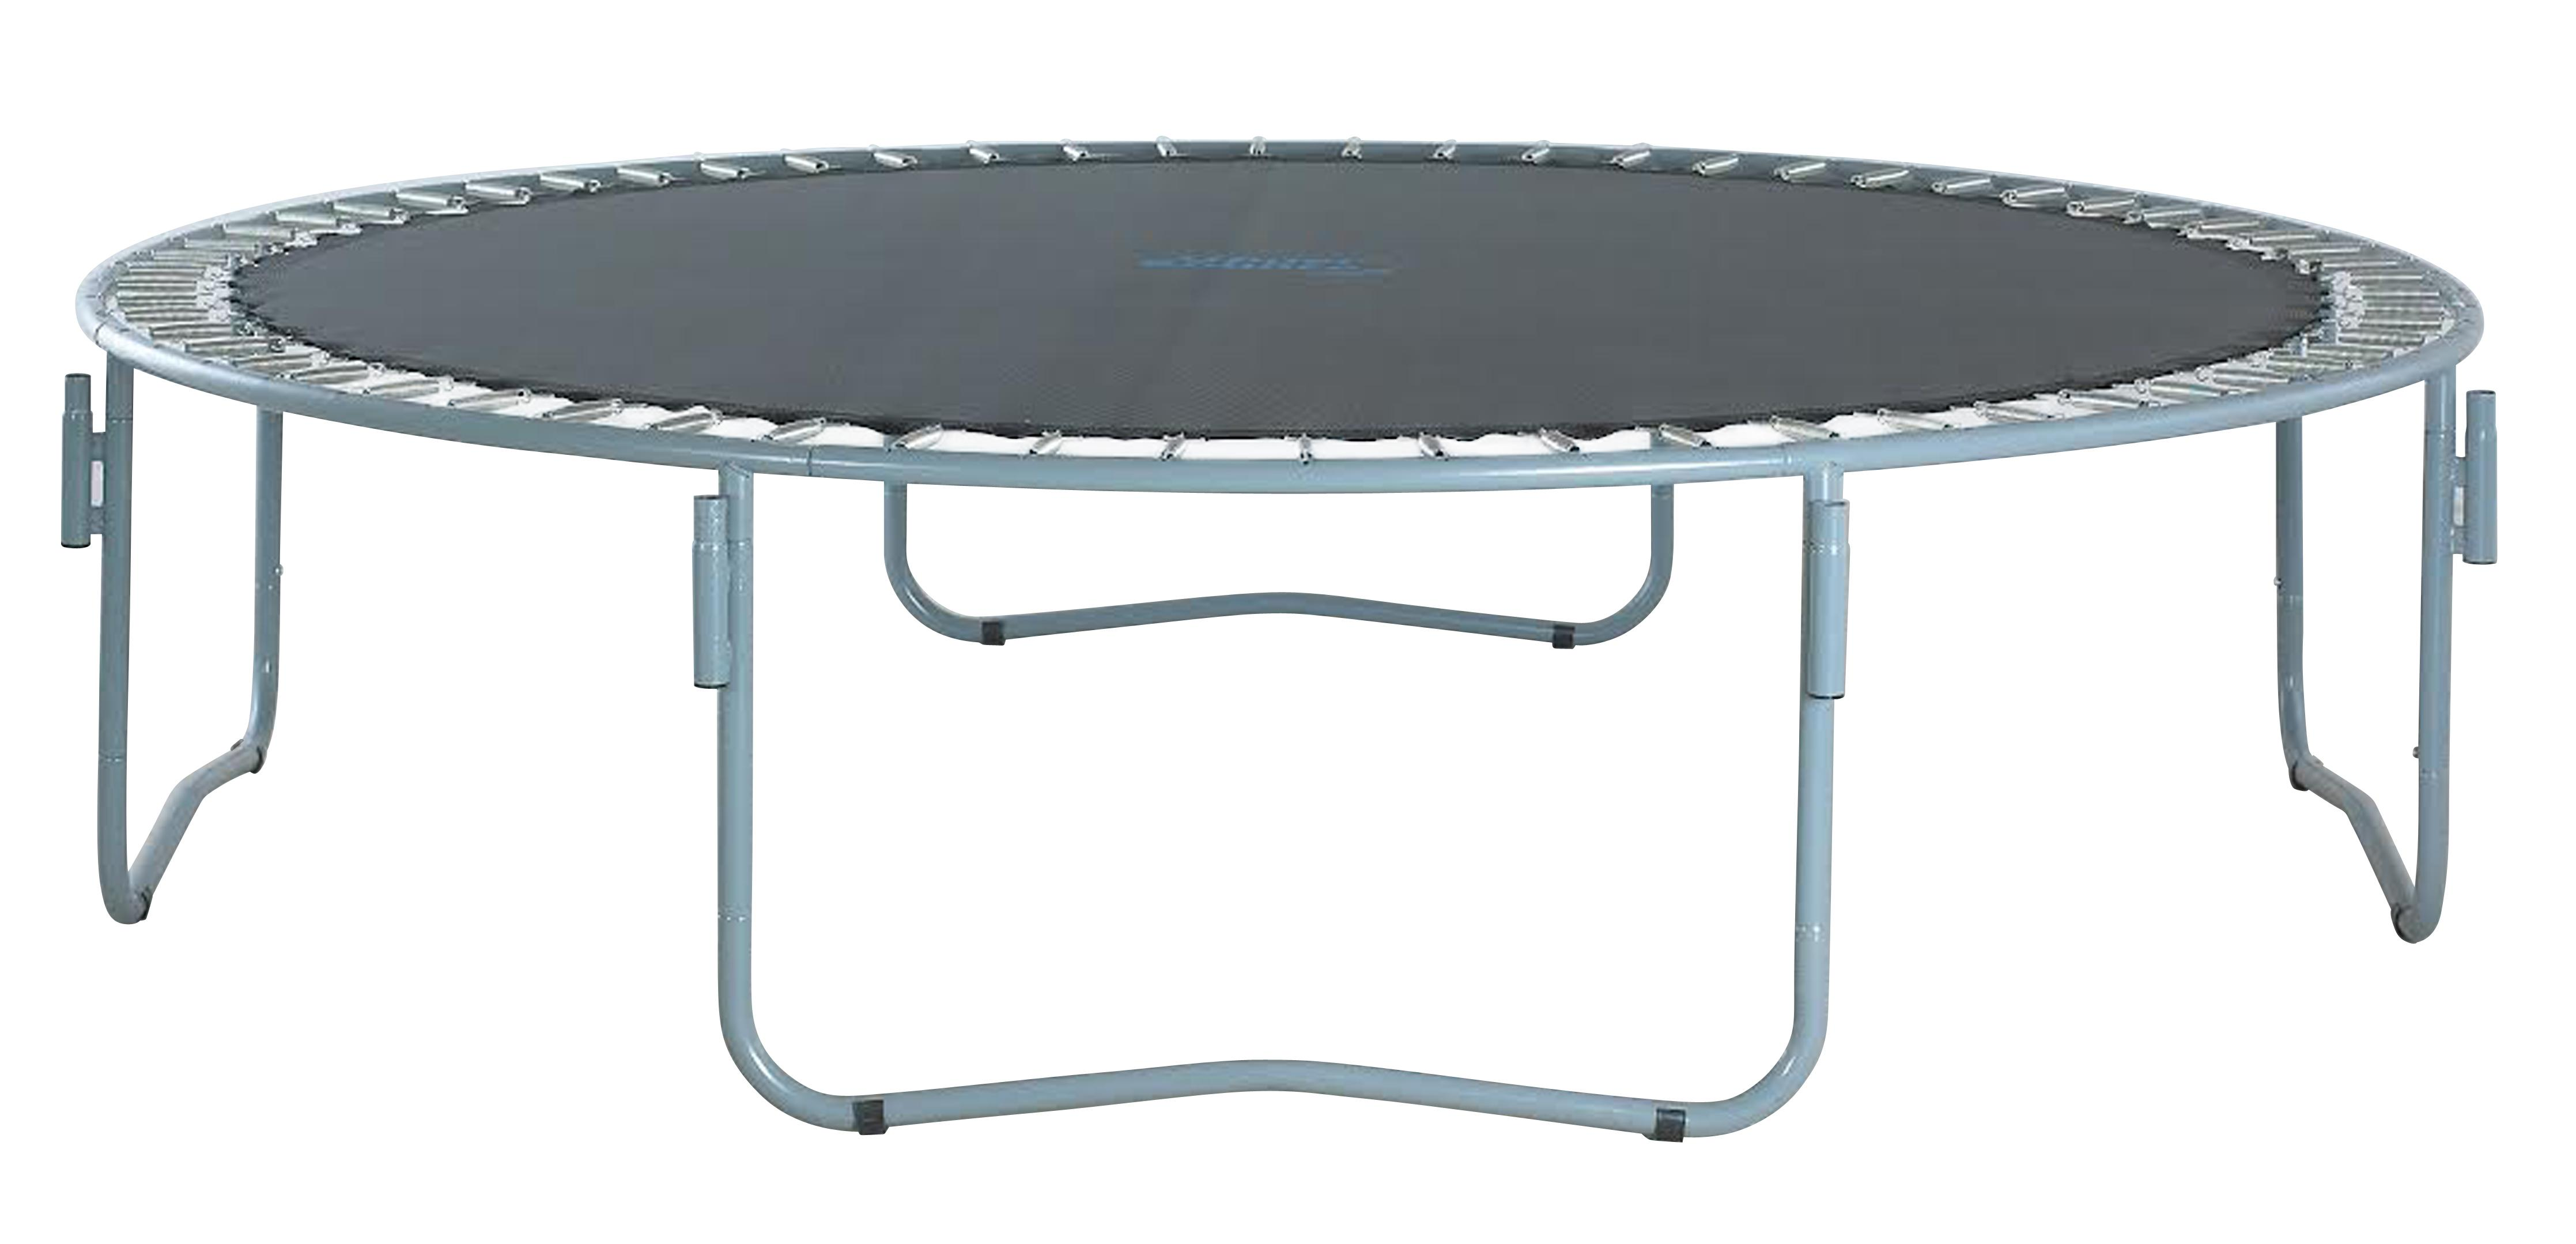 Trampoline Mat Fits For 10 Ft Round Frames With 64 V